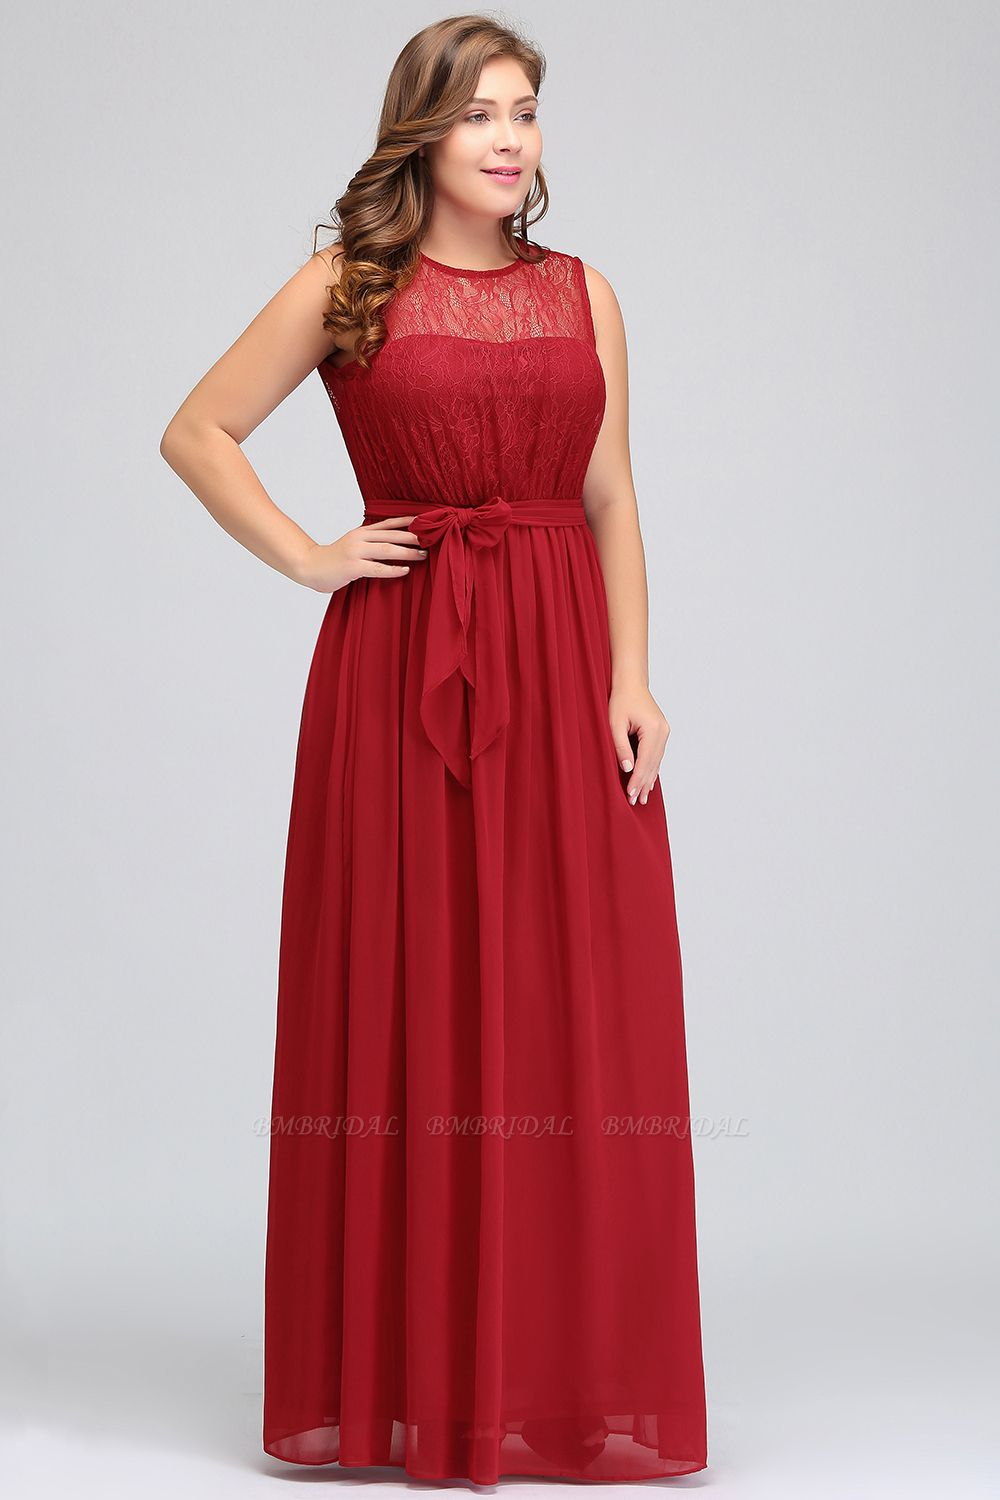 Plus Size Jewel Sleeveless Red Lace Long Bridesmaid Dress with Ruffle